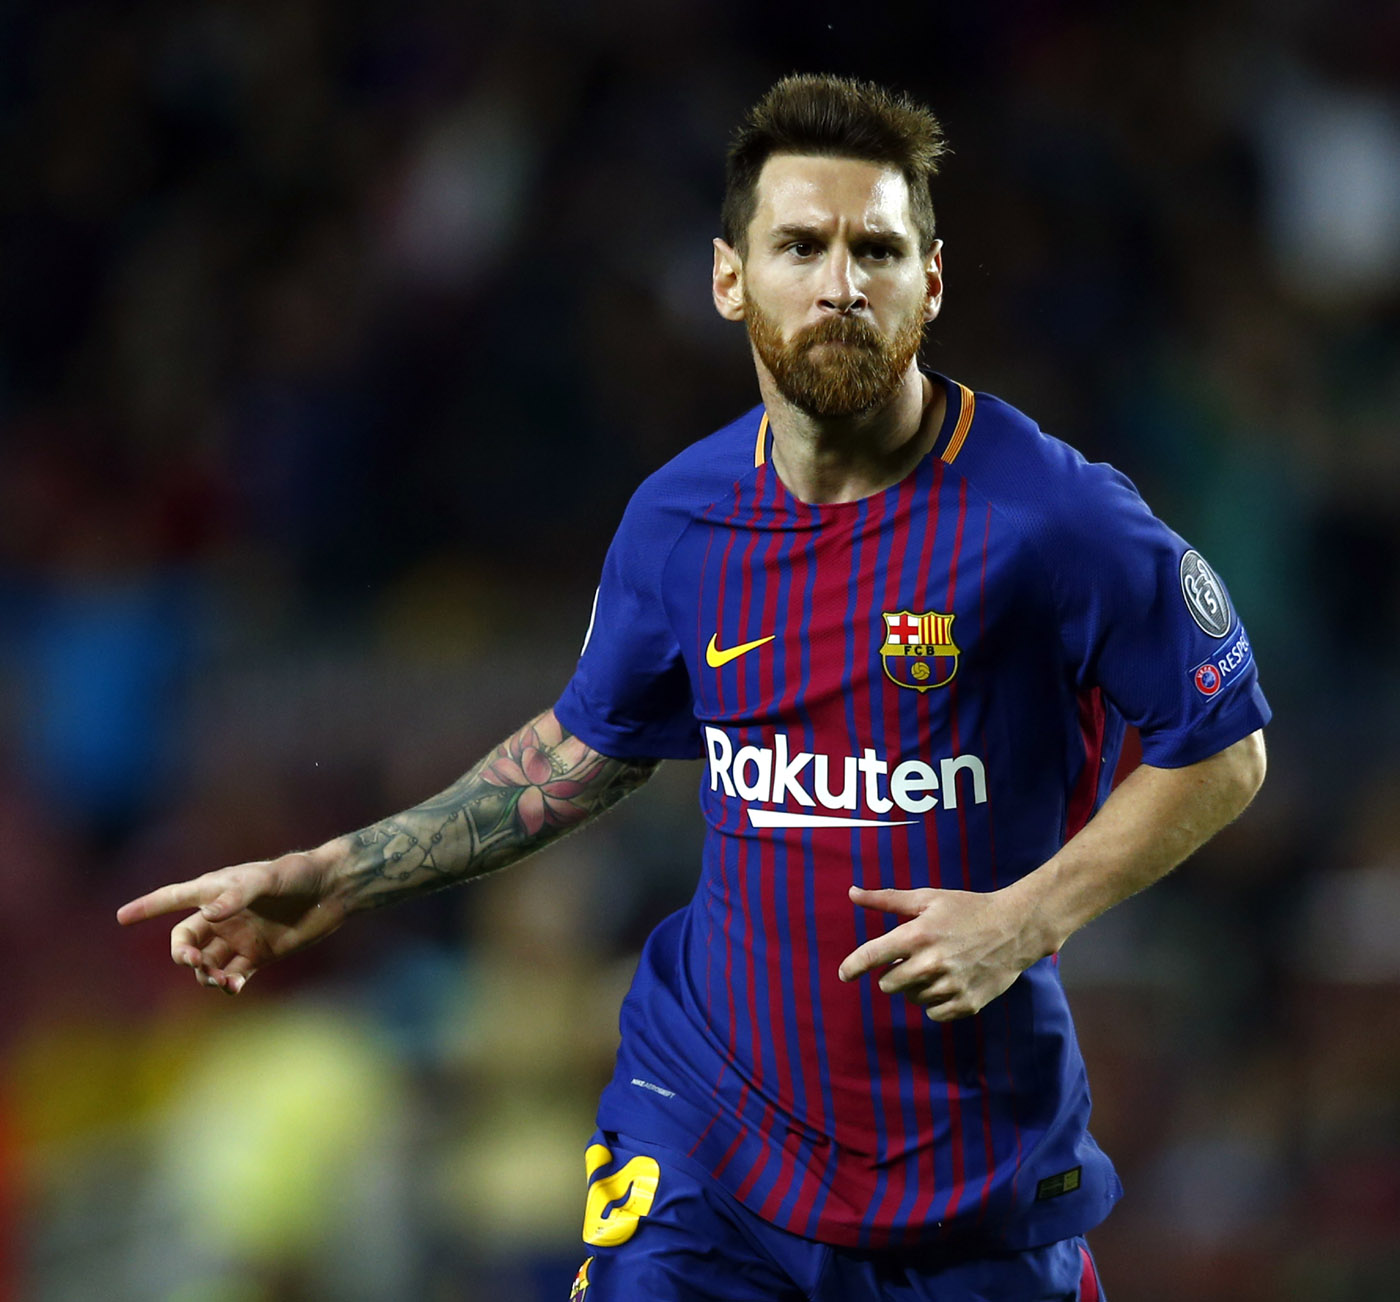 Barcelona's Lionel Messi reacts after scoring during the group D Champions League soccer match between FC Barcelona and Olympiakos at the Camp Nou stadium in Barcelona, Spain on Wednesday.